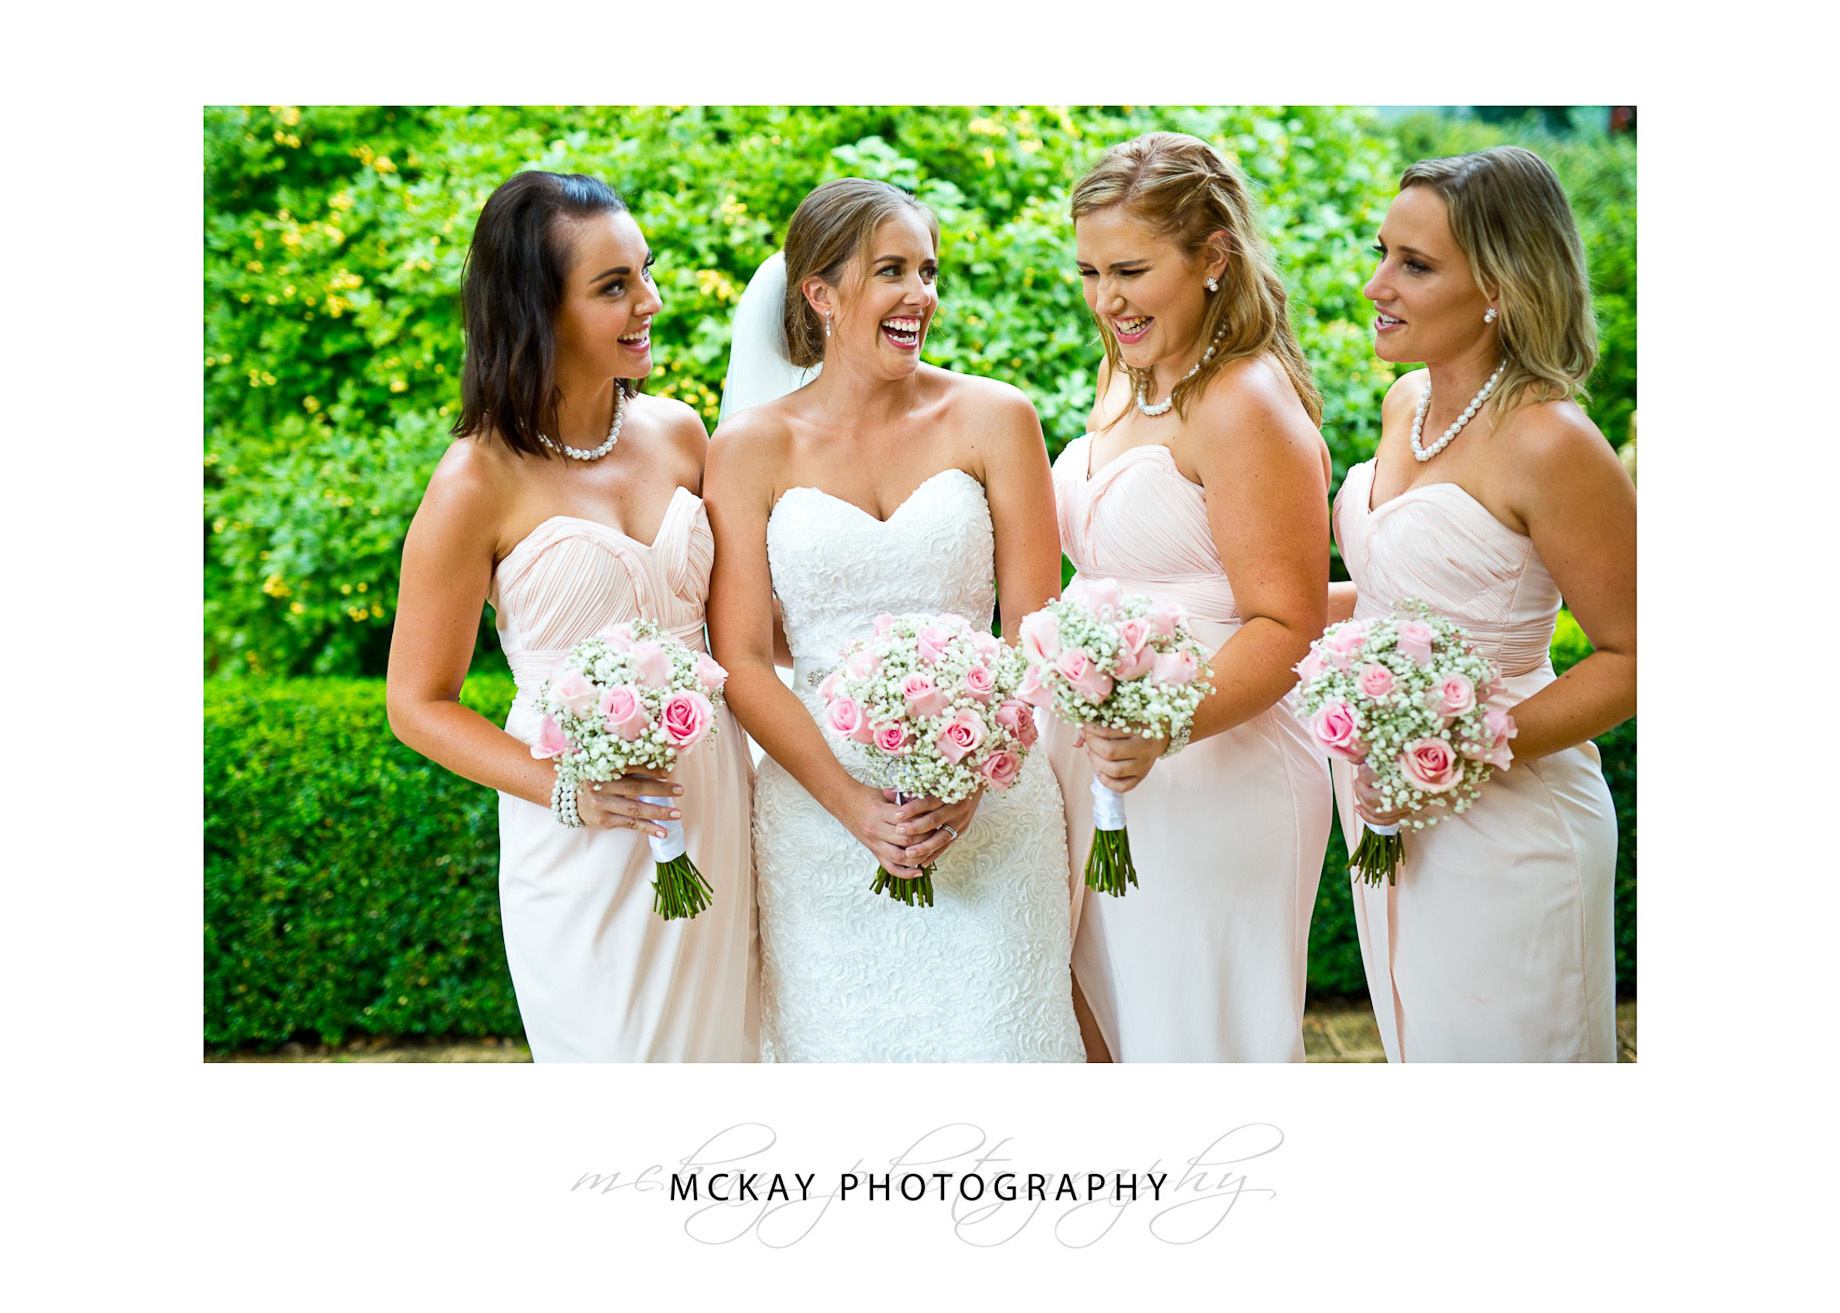 Jen and her bridesmaids